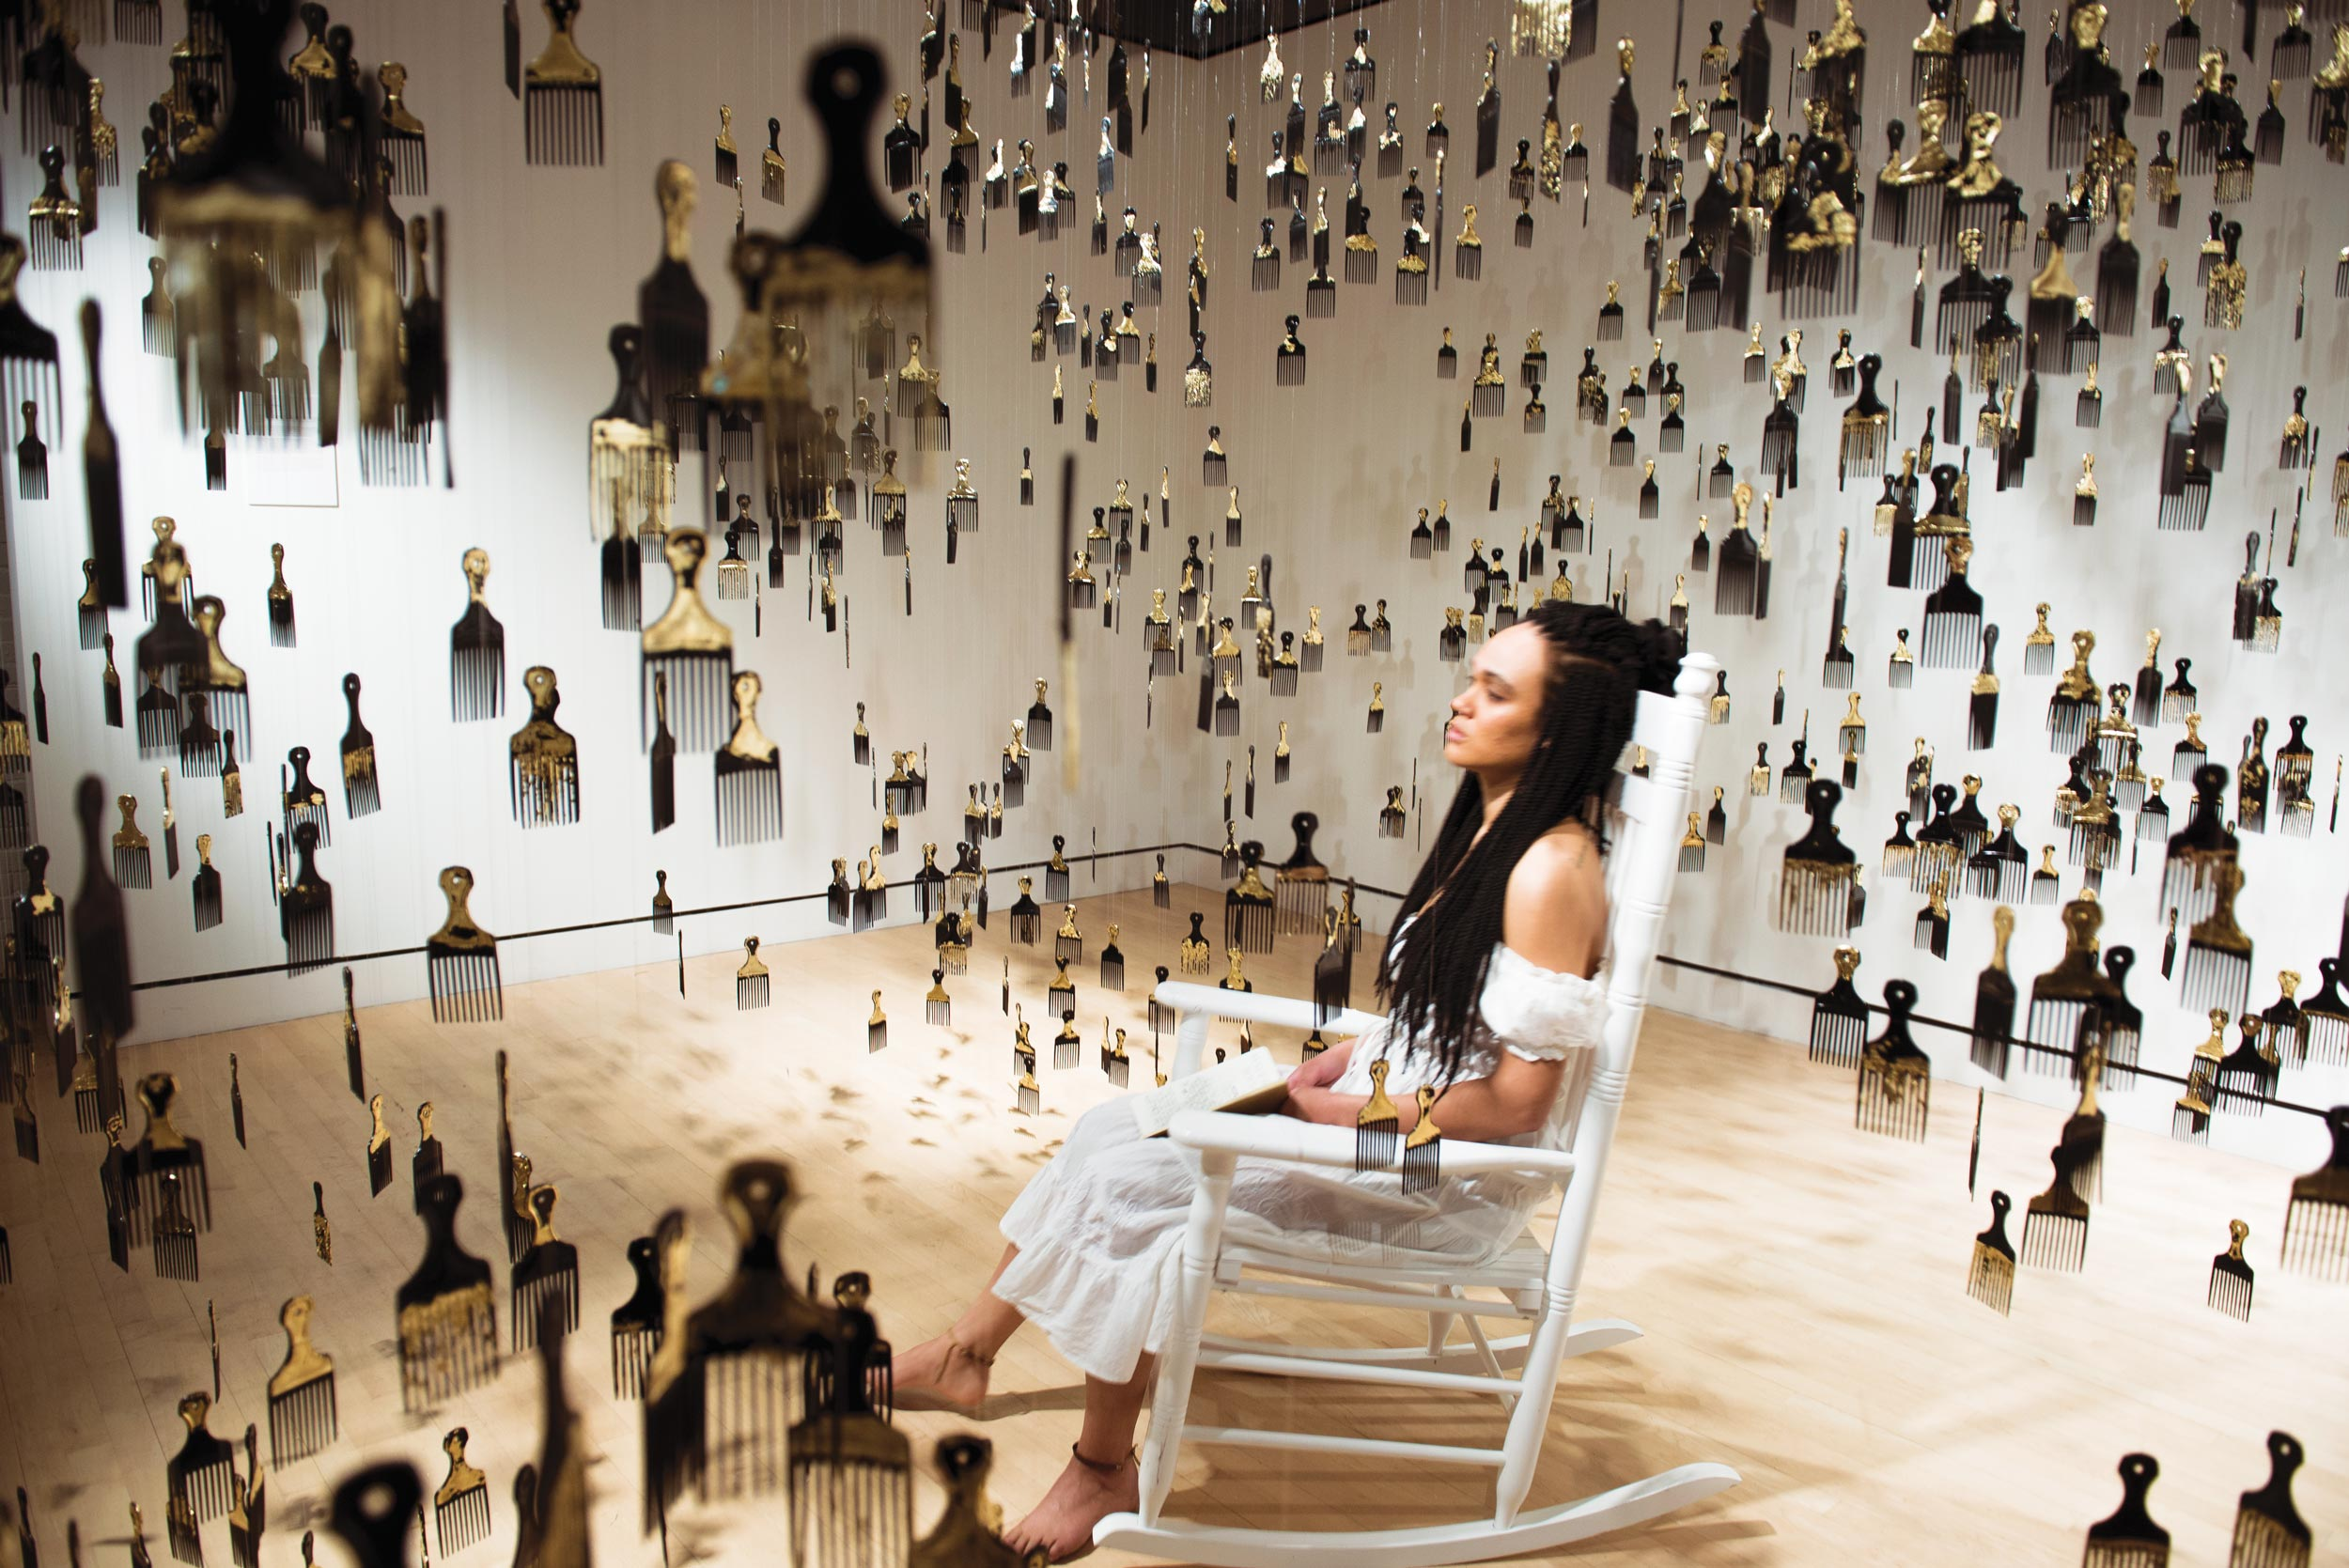 ELEANOR KIPPING   Strange Fruit, 2018, installation and performance, afro picks, gold leaf, rocking chair, book of poetry, performance by artist